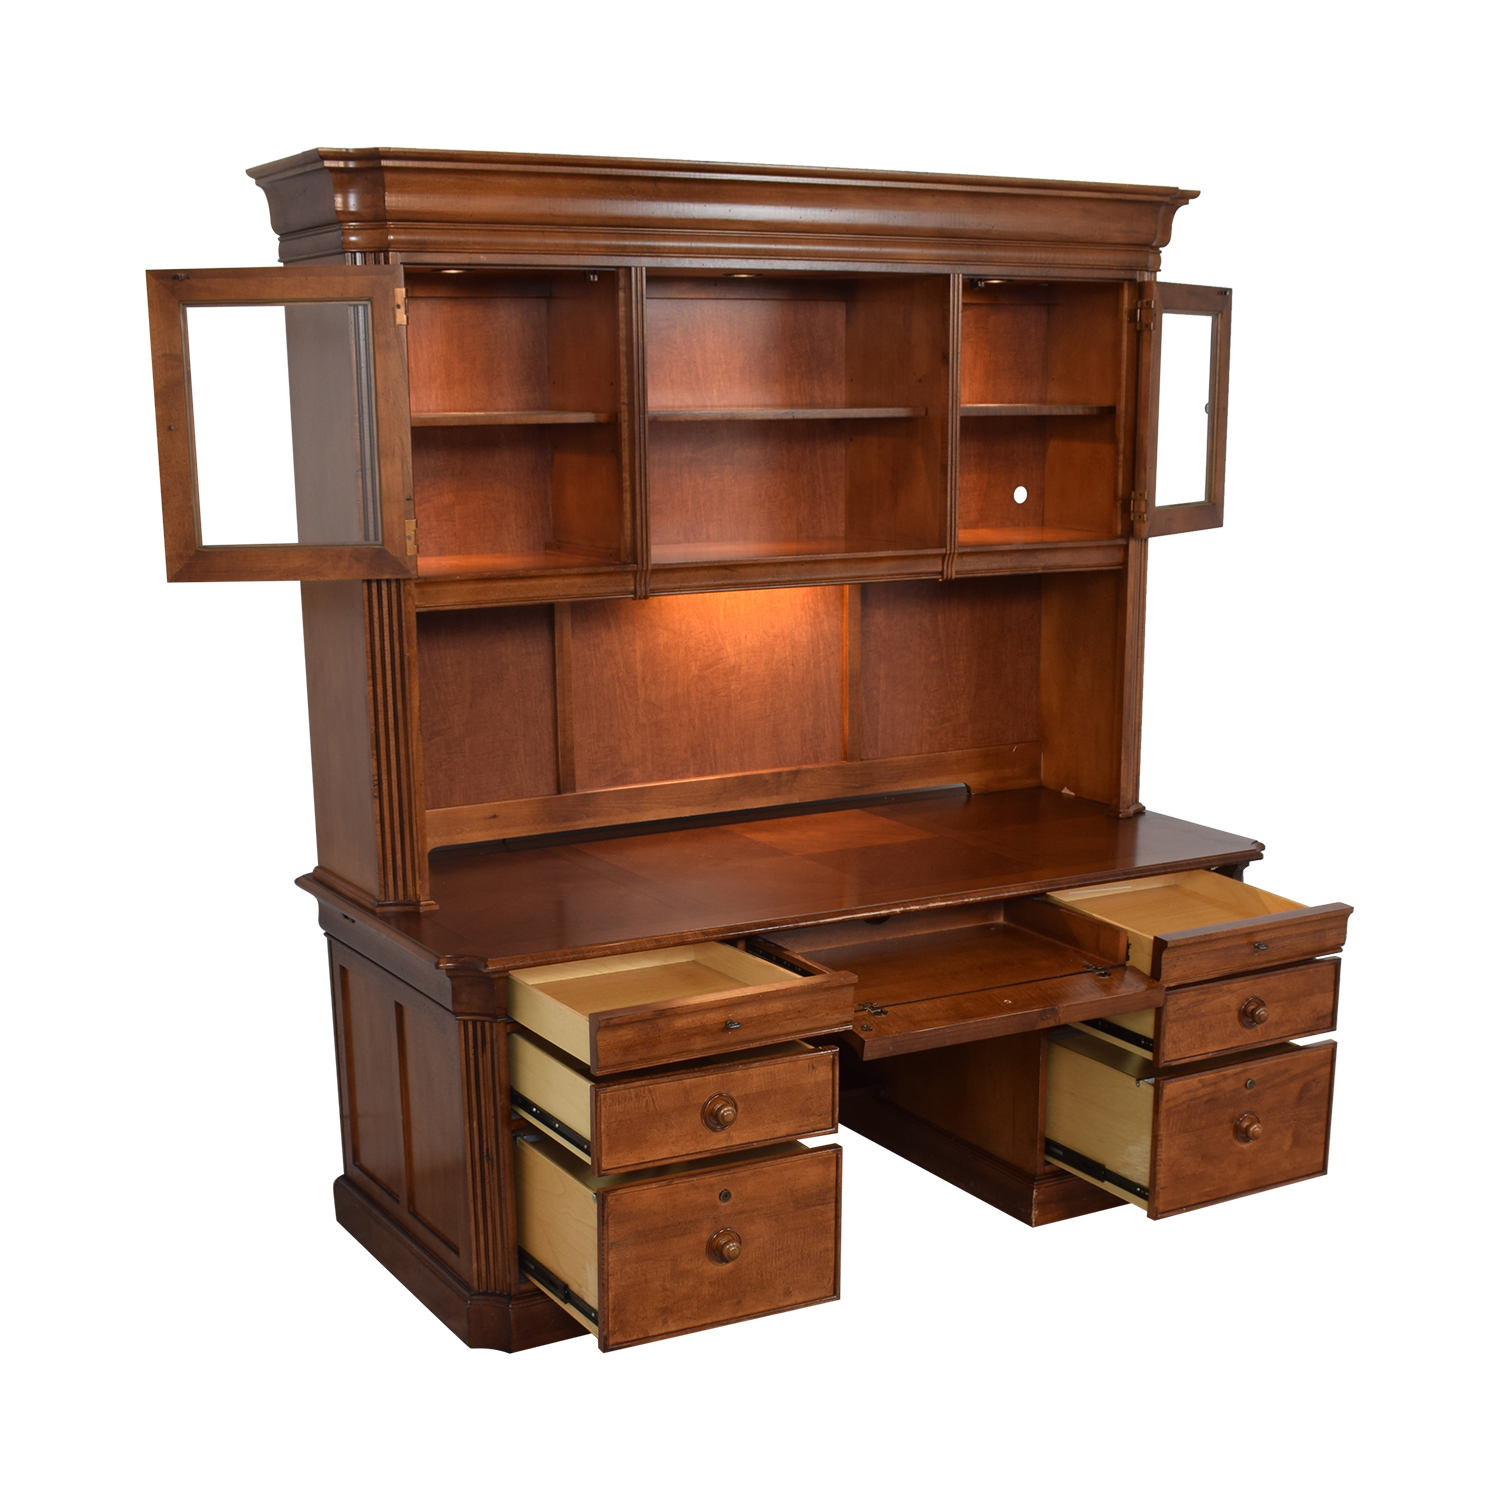 Stanley Furniture Stanley Furniture Executive Desk and Hutch discount